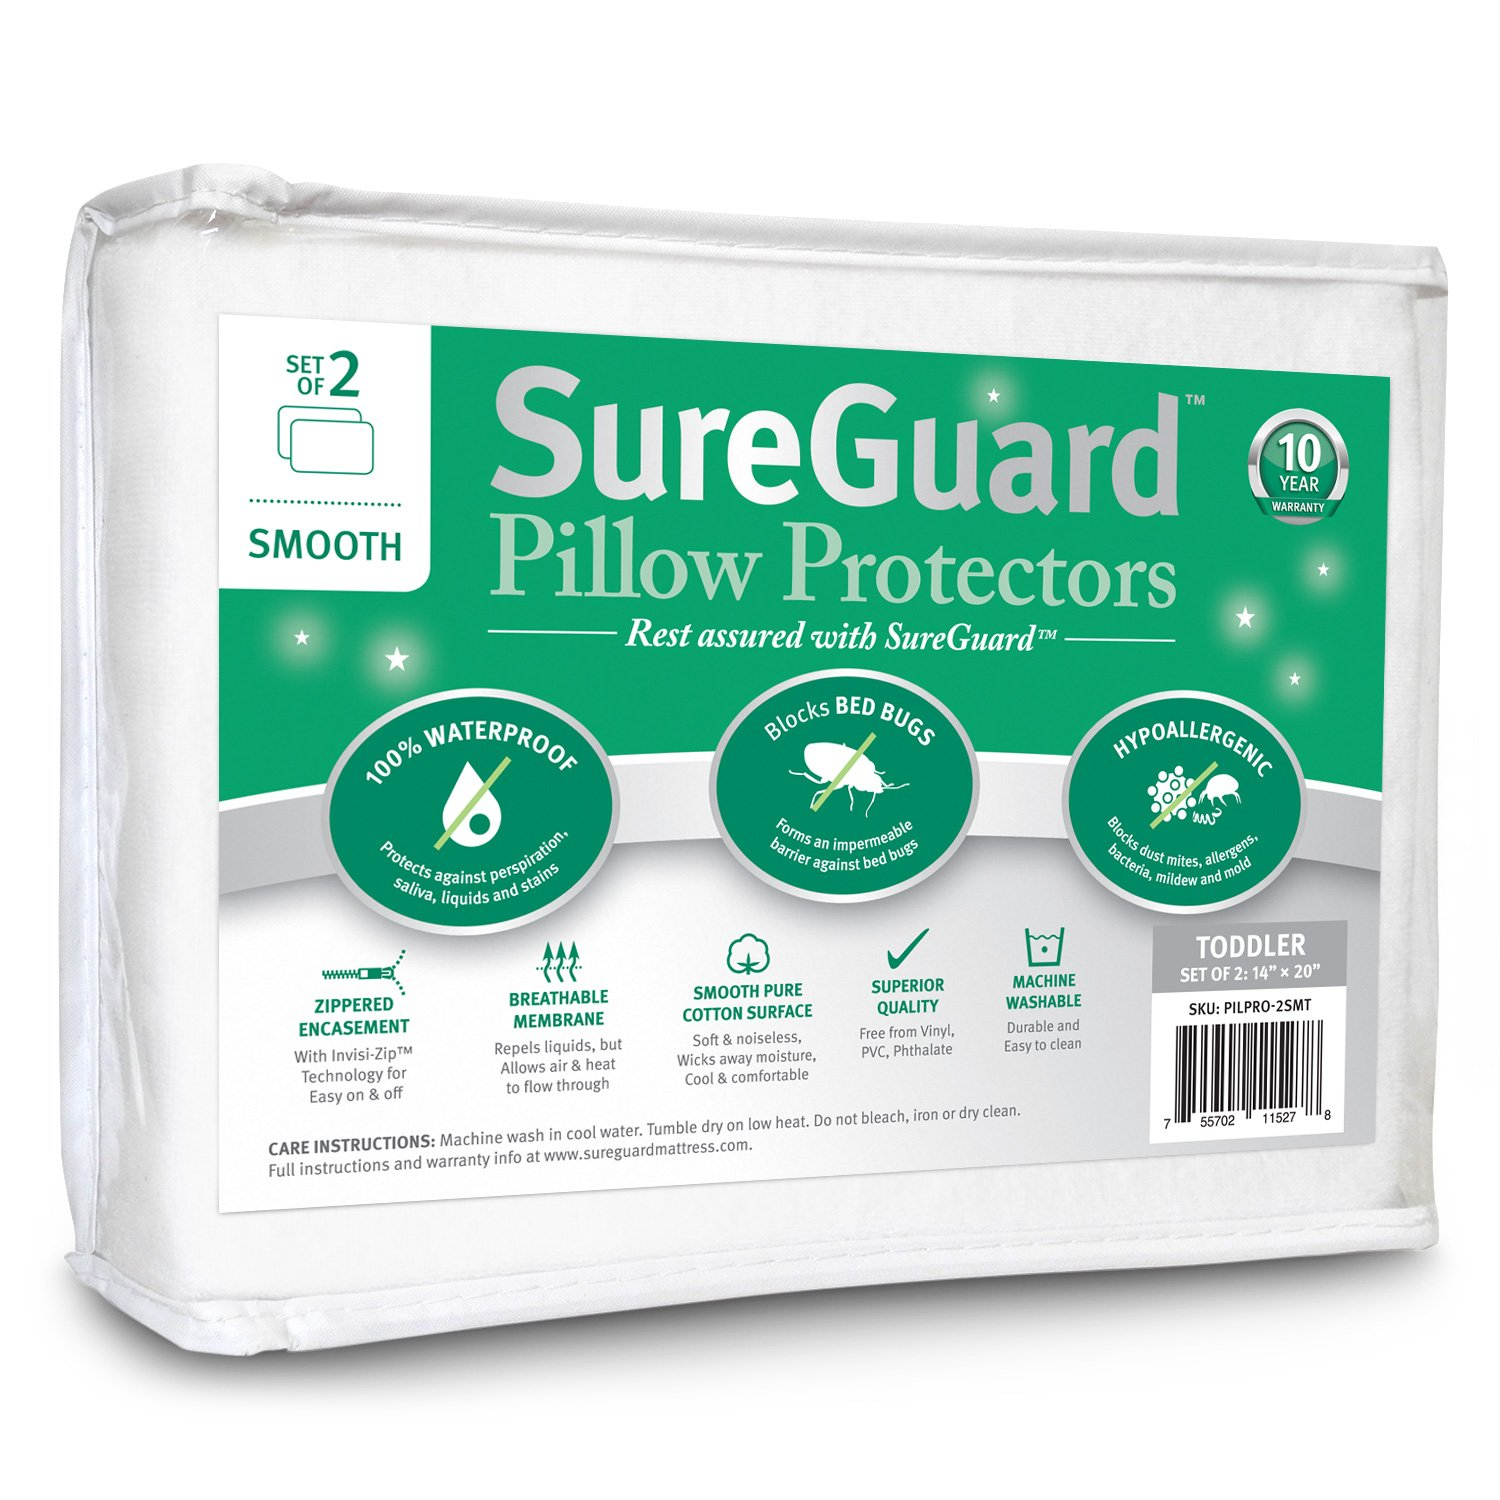 Set of 2 Travel Size SureGuard Pillow Protectors - 100% Waterproof, Bed Bug Proof, Hypoallergenic - Premium Zippered Cotton Covers - 10 Year Warranty - Smooth